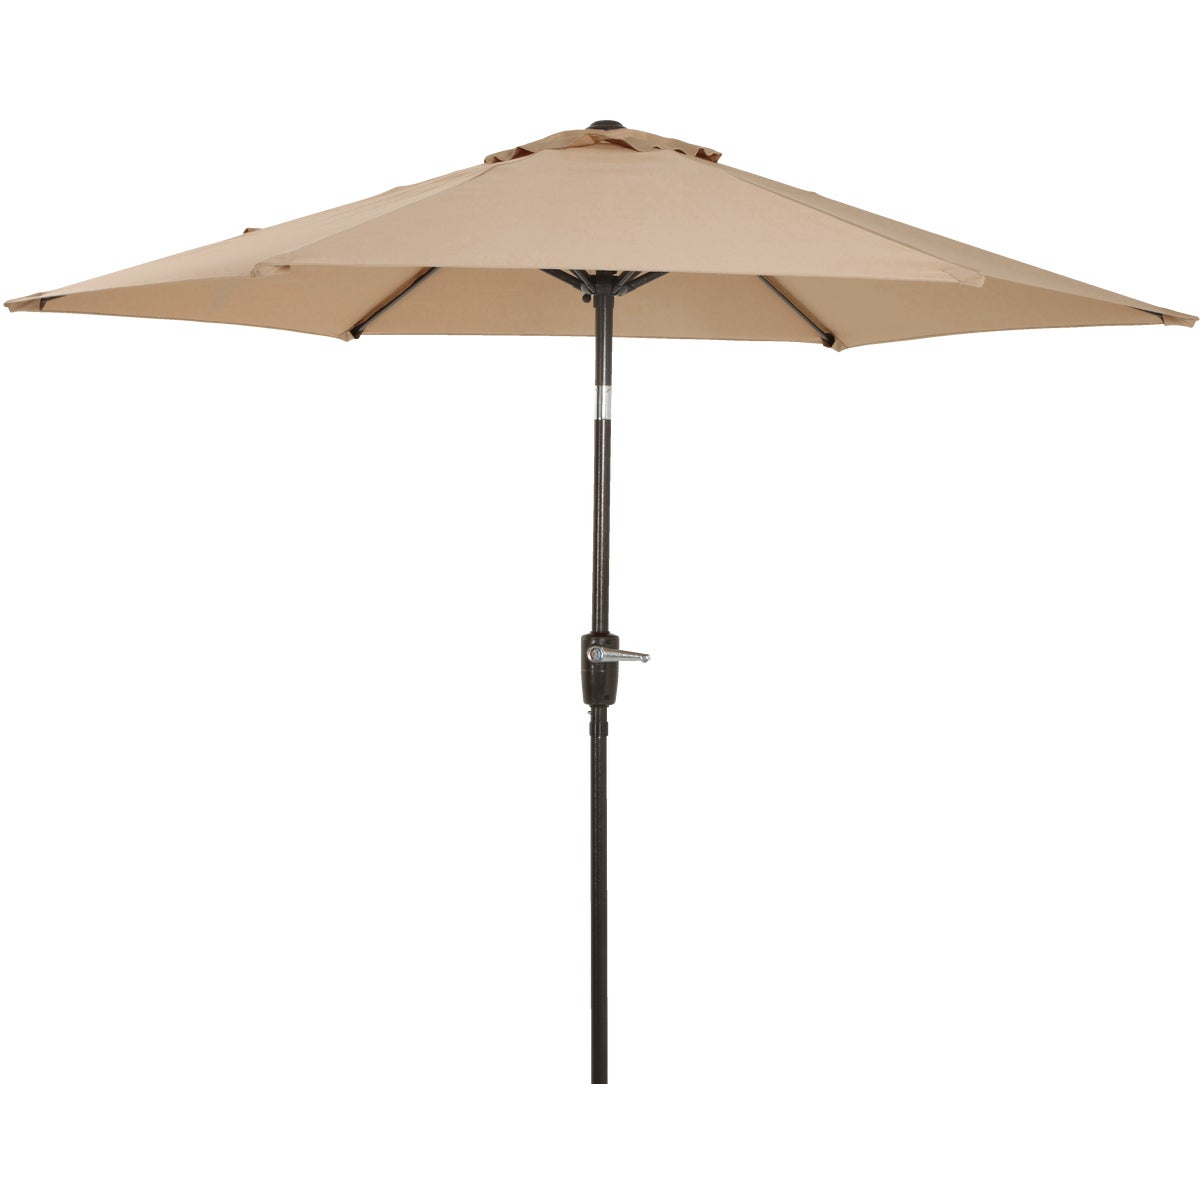 7.5' TAN UMBRELLA - TJAU-004A-230-TN by Do it Best